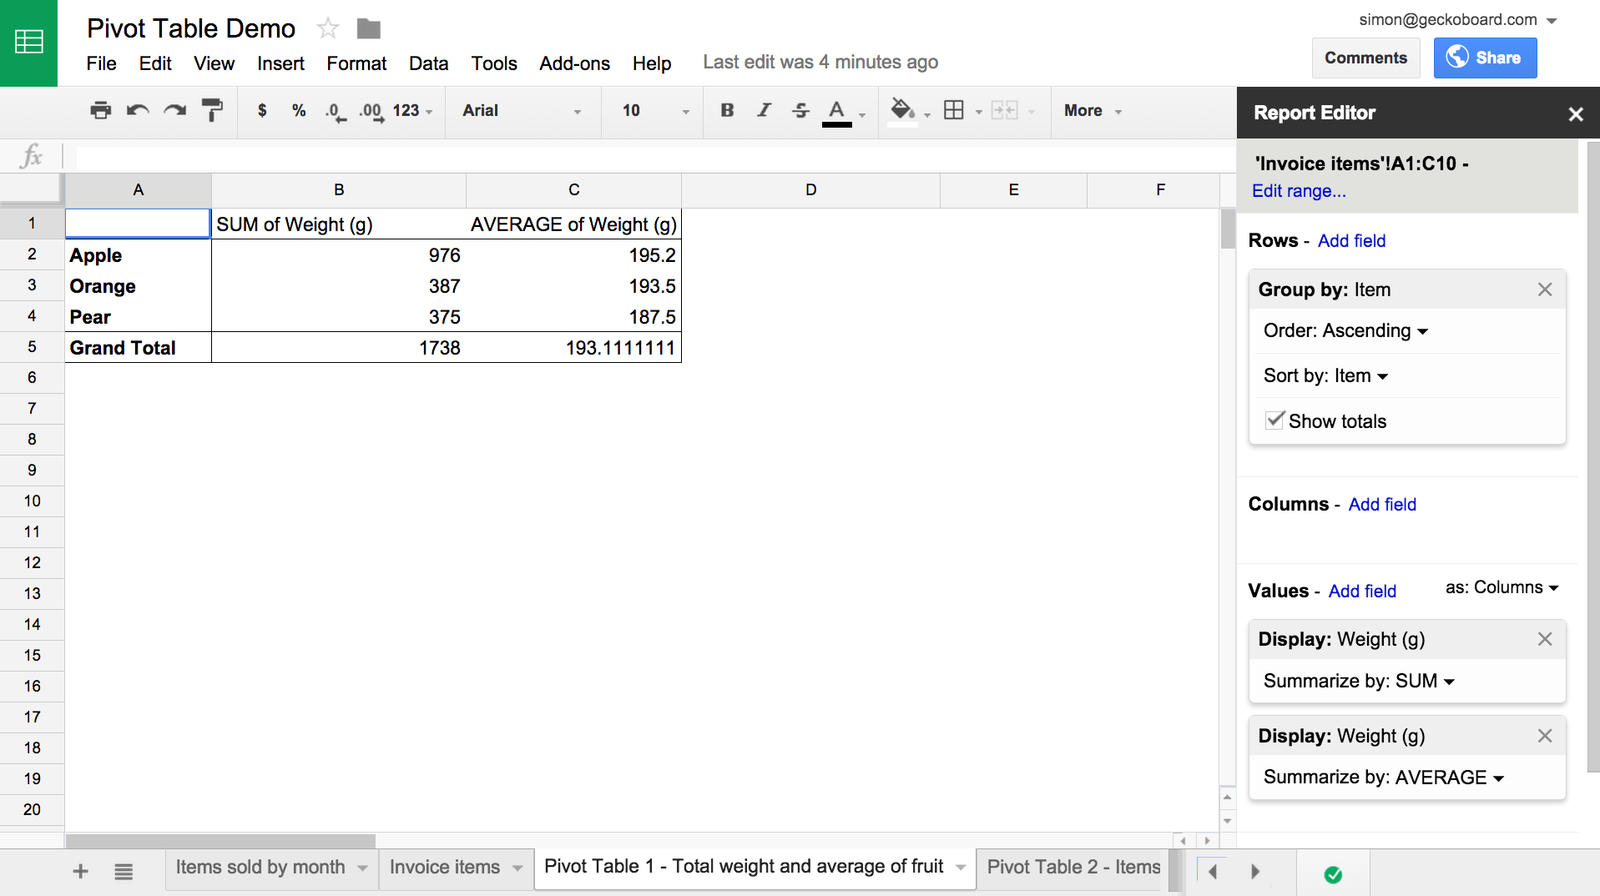 Job Search Spreadsheet Google Sheets Throughout Part 2: 6 Google Sheets Functions You Probably Don't Know But Should Job Search Spreadsheet Google Sheets Google Spreadshee Google Spreadshee job search spreadsheet google sheets